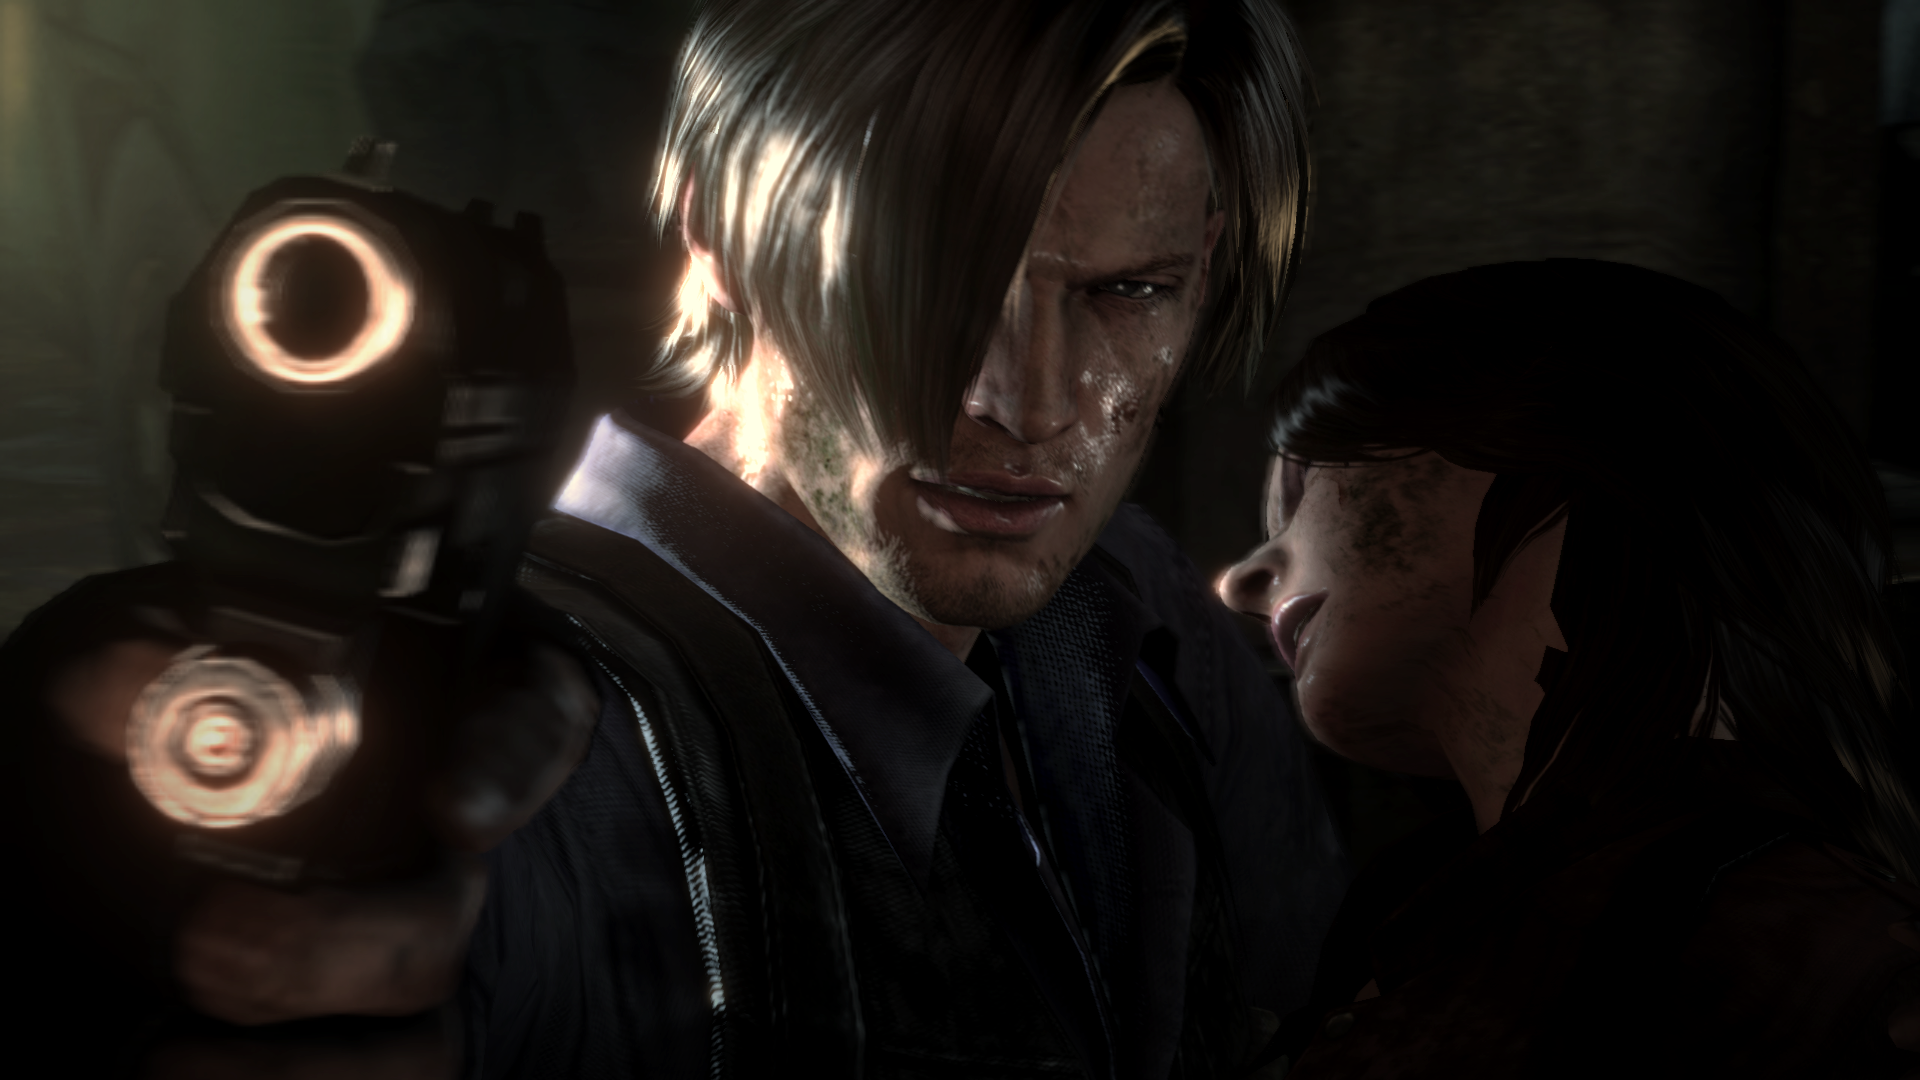 Resident Evil 4, 5, 6 Coming To Playstation 4 And Xbox One fe8df988d3d9f3f5ef53b3a0e56f87a4